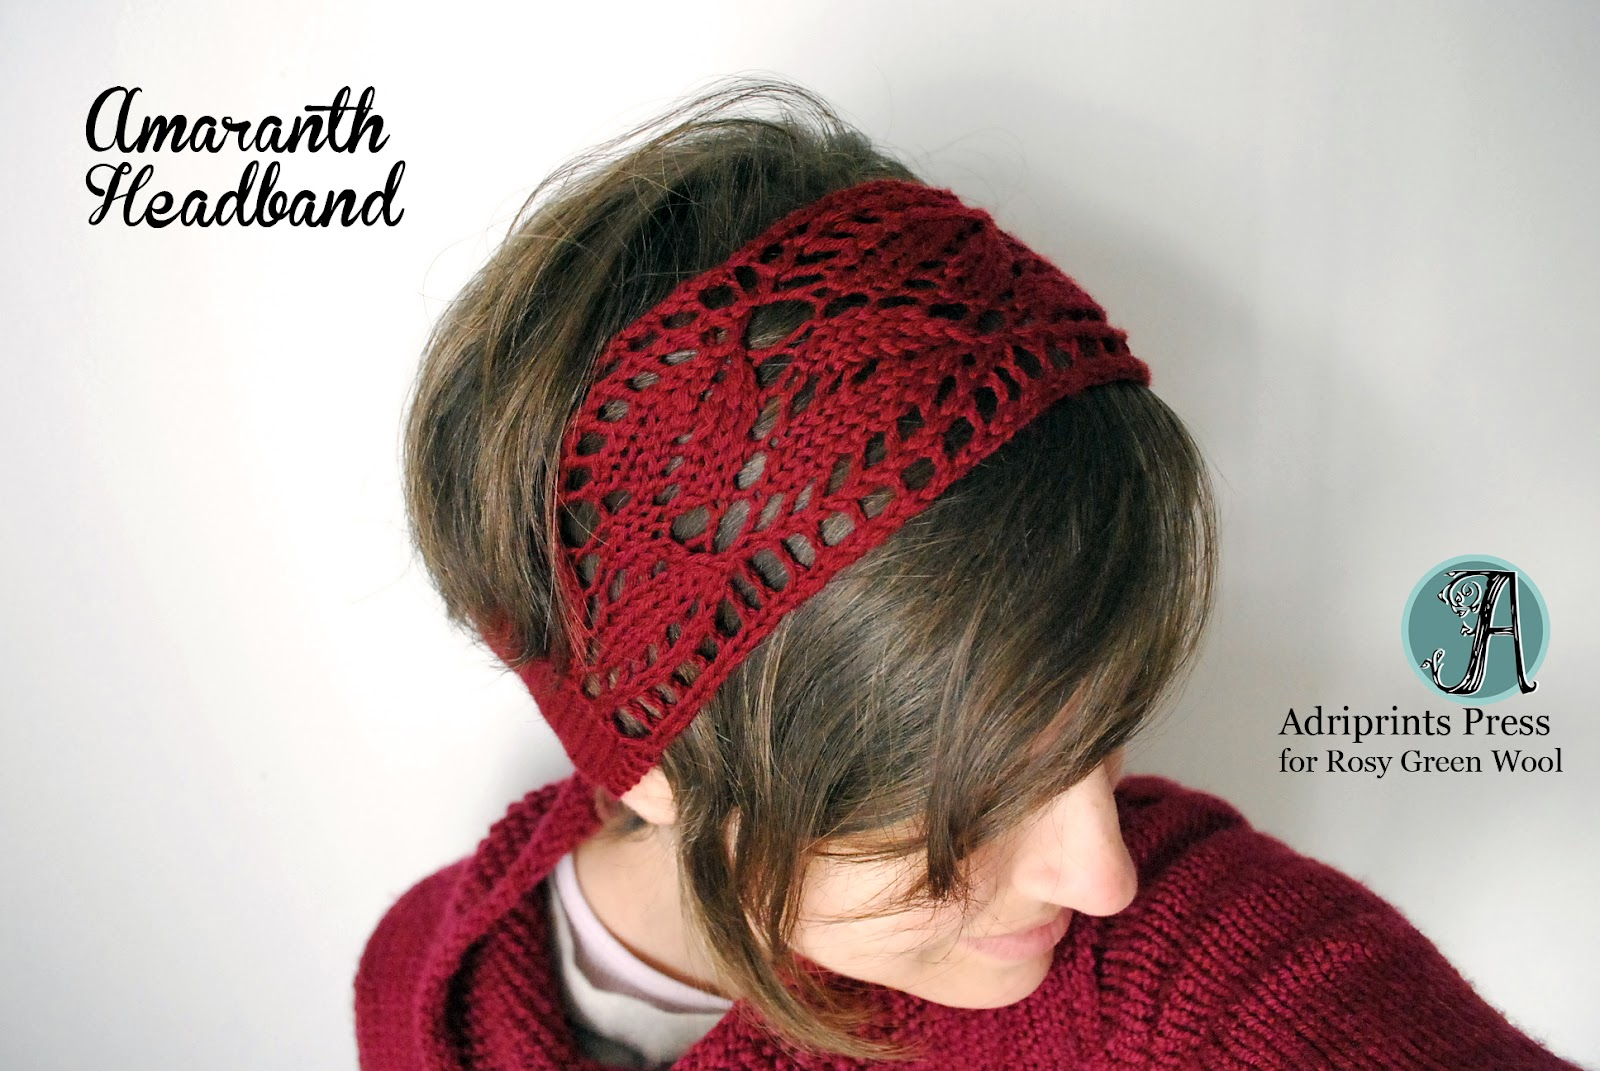 Adri Makes a Thing or Two: Knitting Pattern Shop